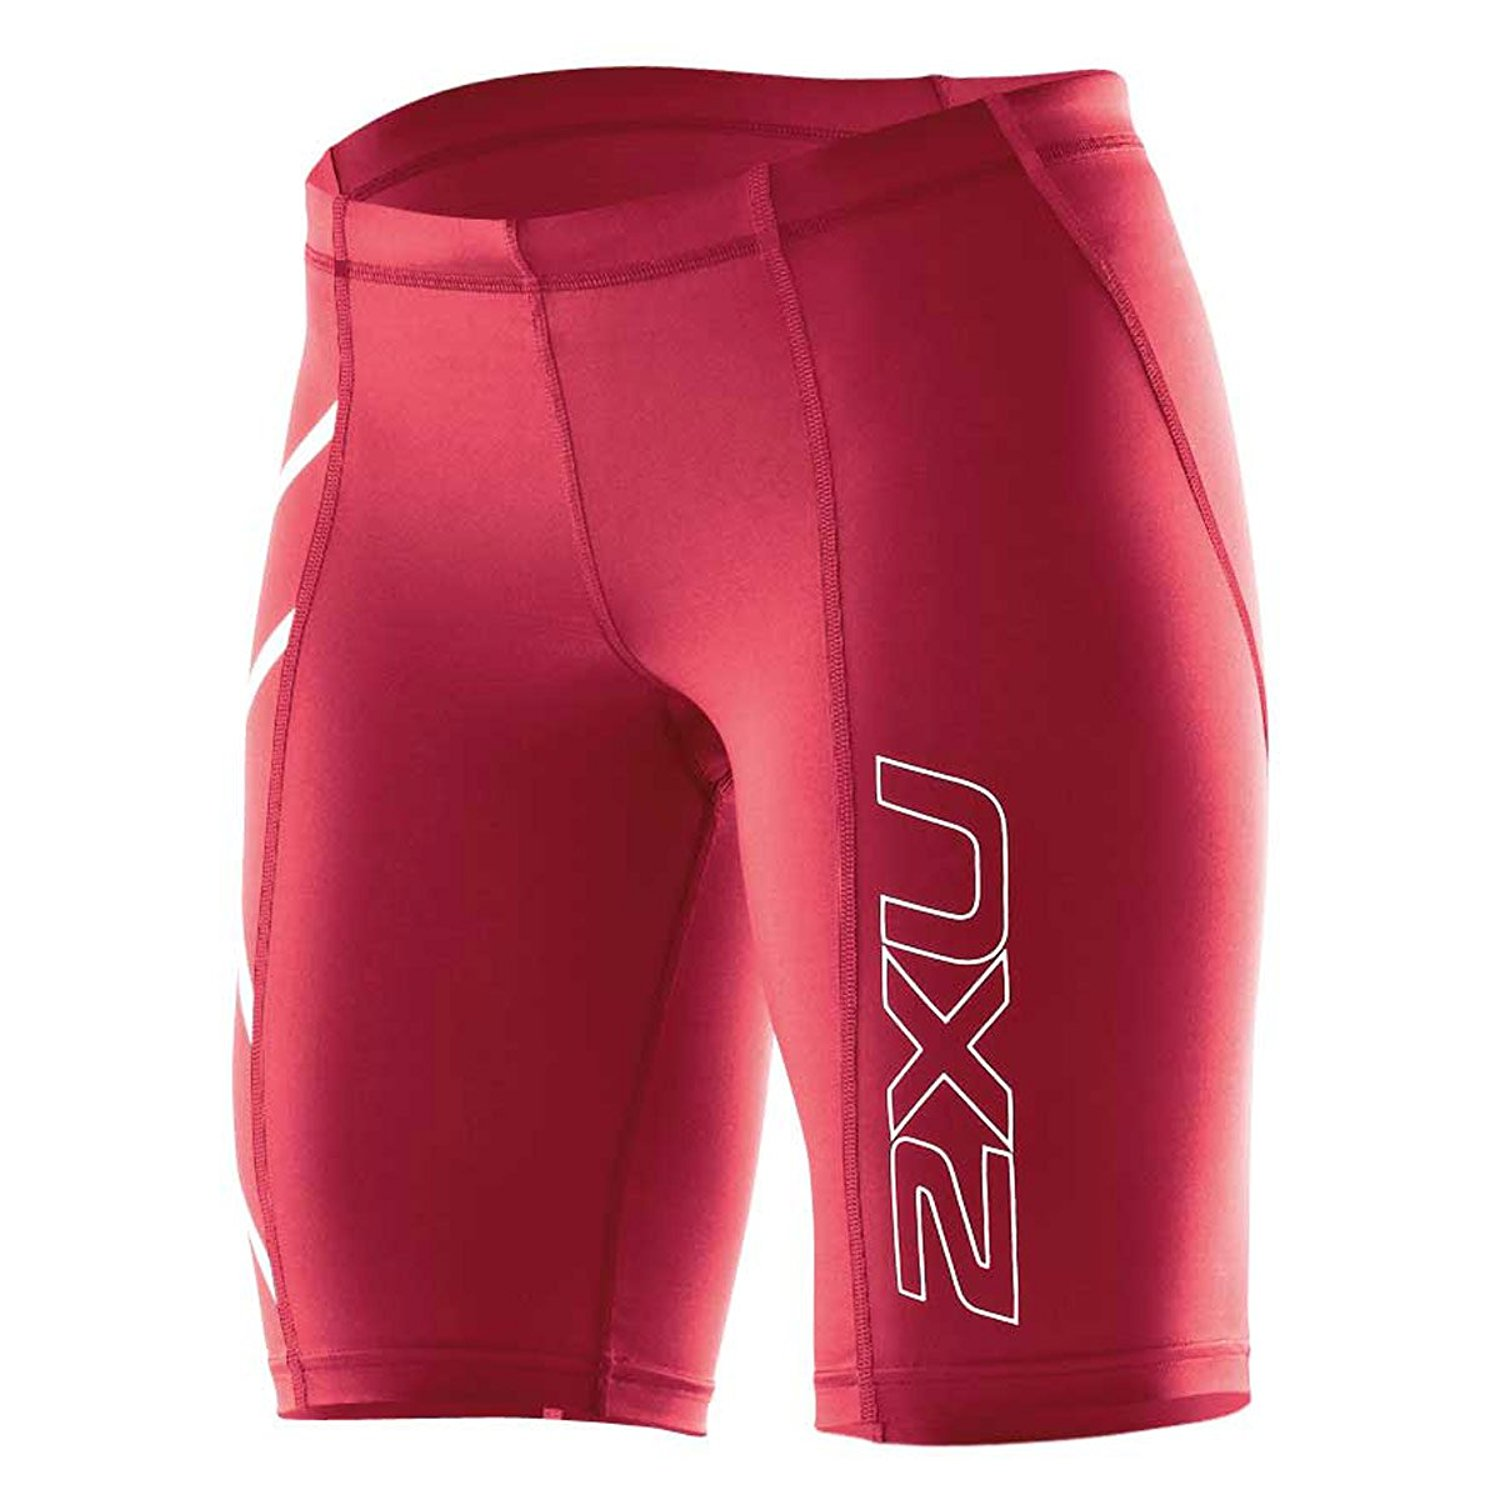 2XU Women's Compression Short - AW16